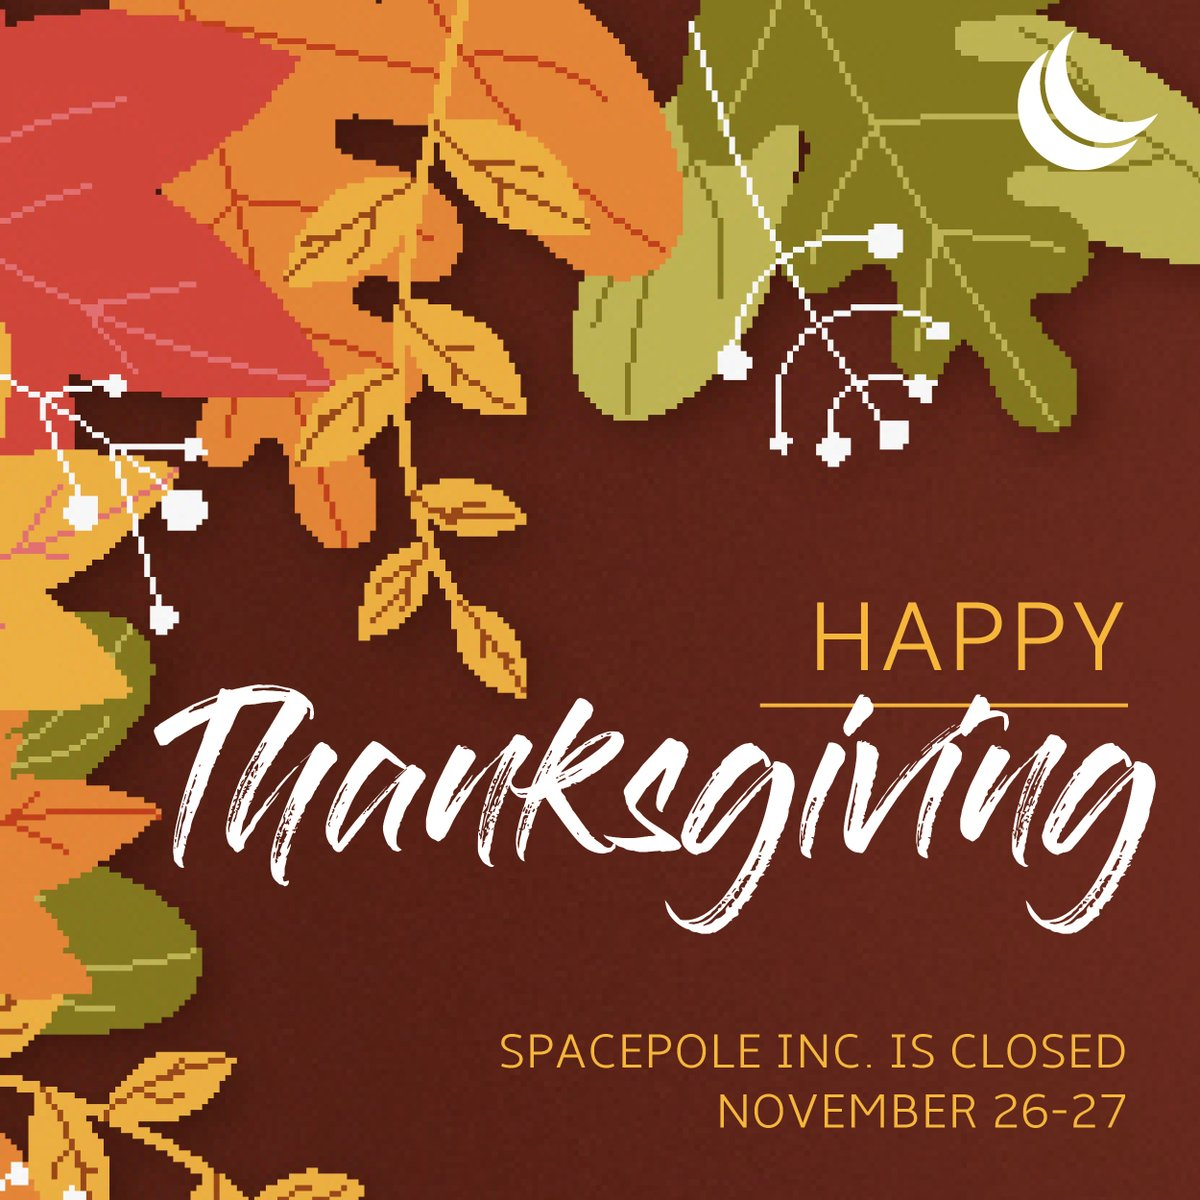 test Twitter Media - HOLIDAY CLOSURE ANNOUNCEMNT:  @SpacePole_Inc will be close Thu 11/26 & Fri 11/27 in observance of Thanksgiving. We wish everyone a lovely holiday! #Thanksgiving2020 https://t.co/IbGiVJPjol